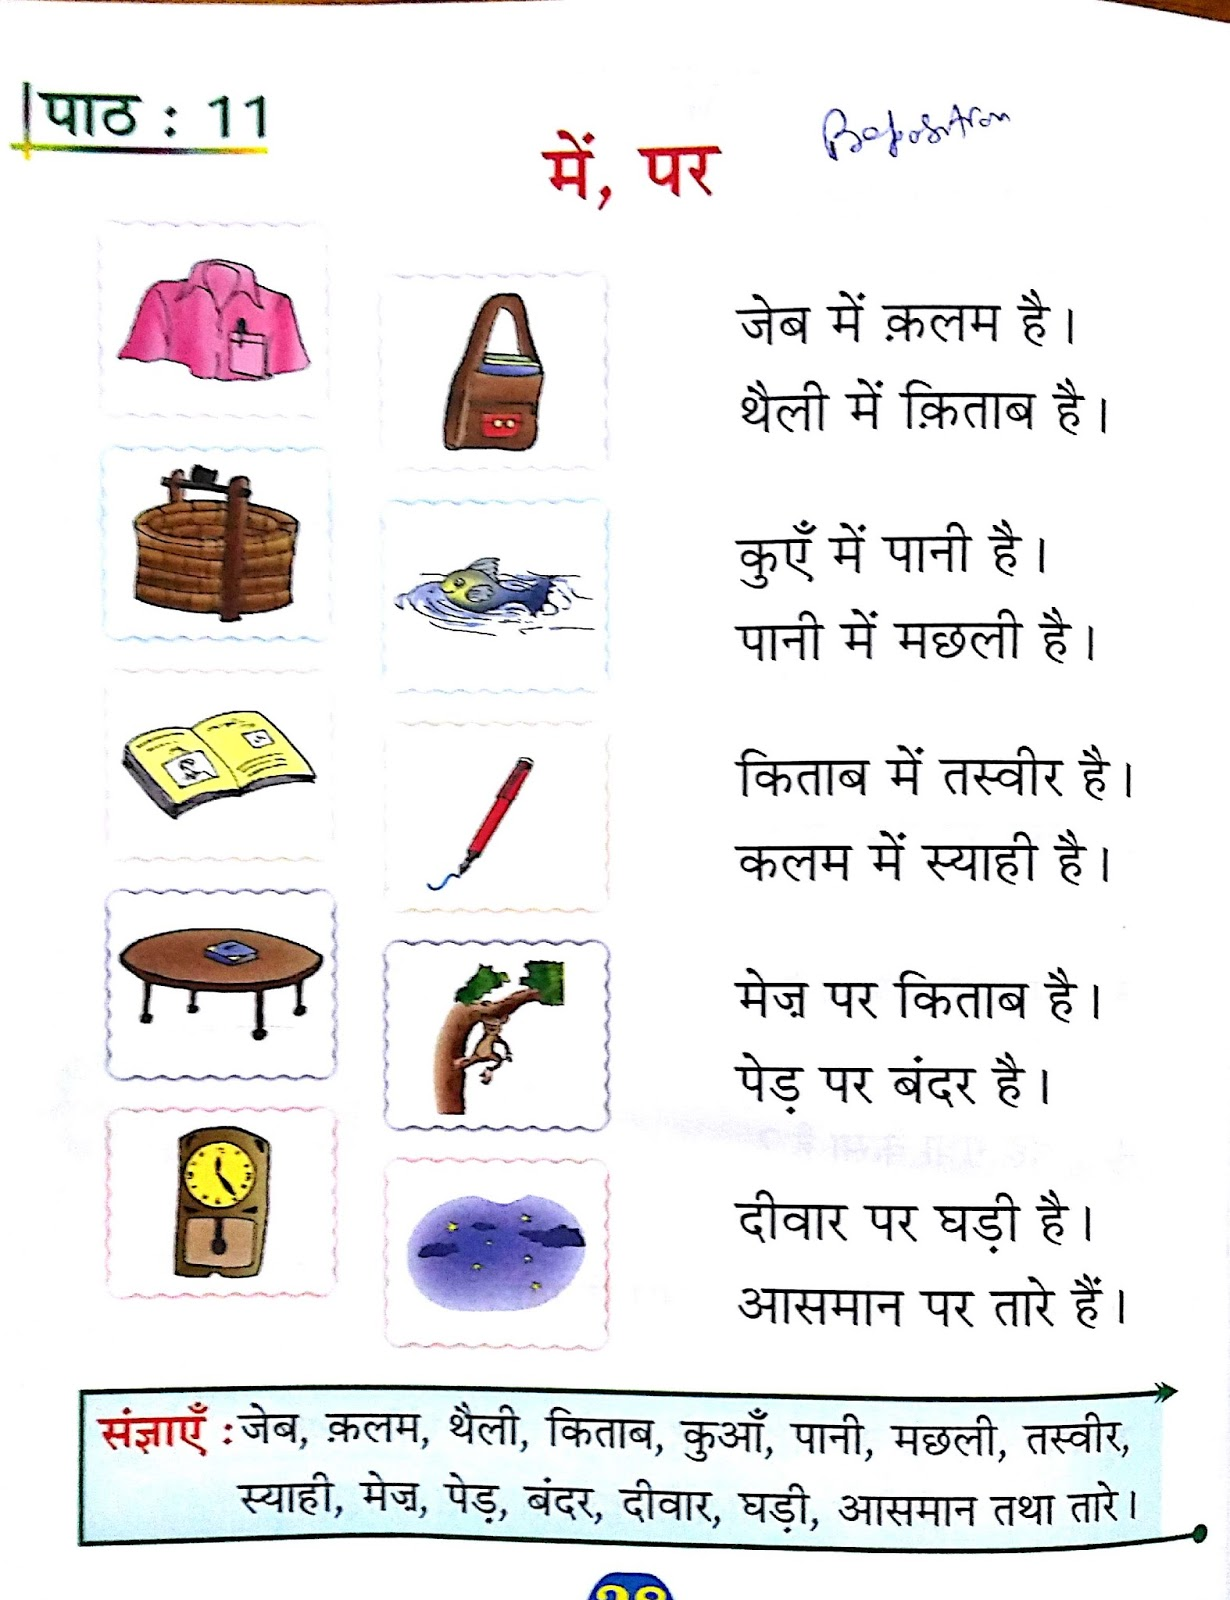 Hindi Grammar Work Sheet Collection for Classes 5,6, 7 & 8: Cases or